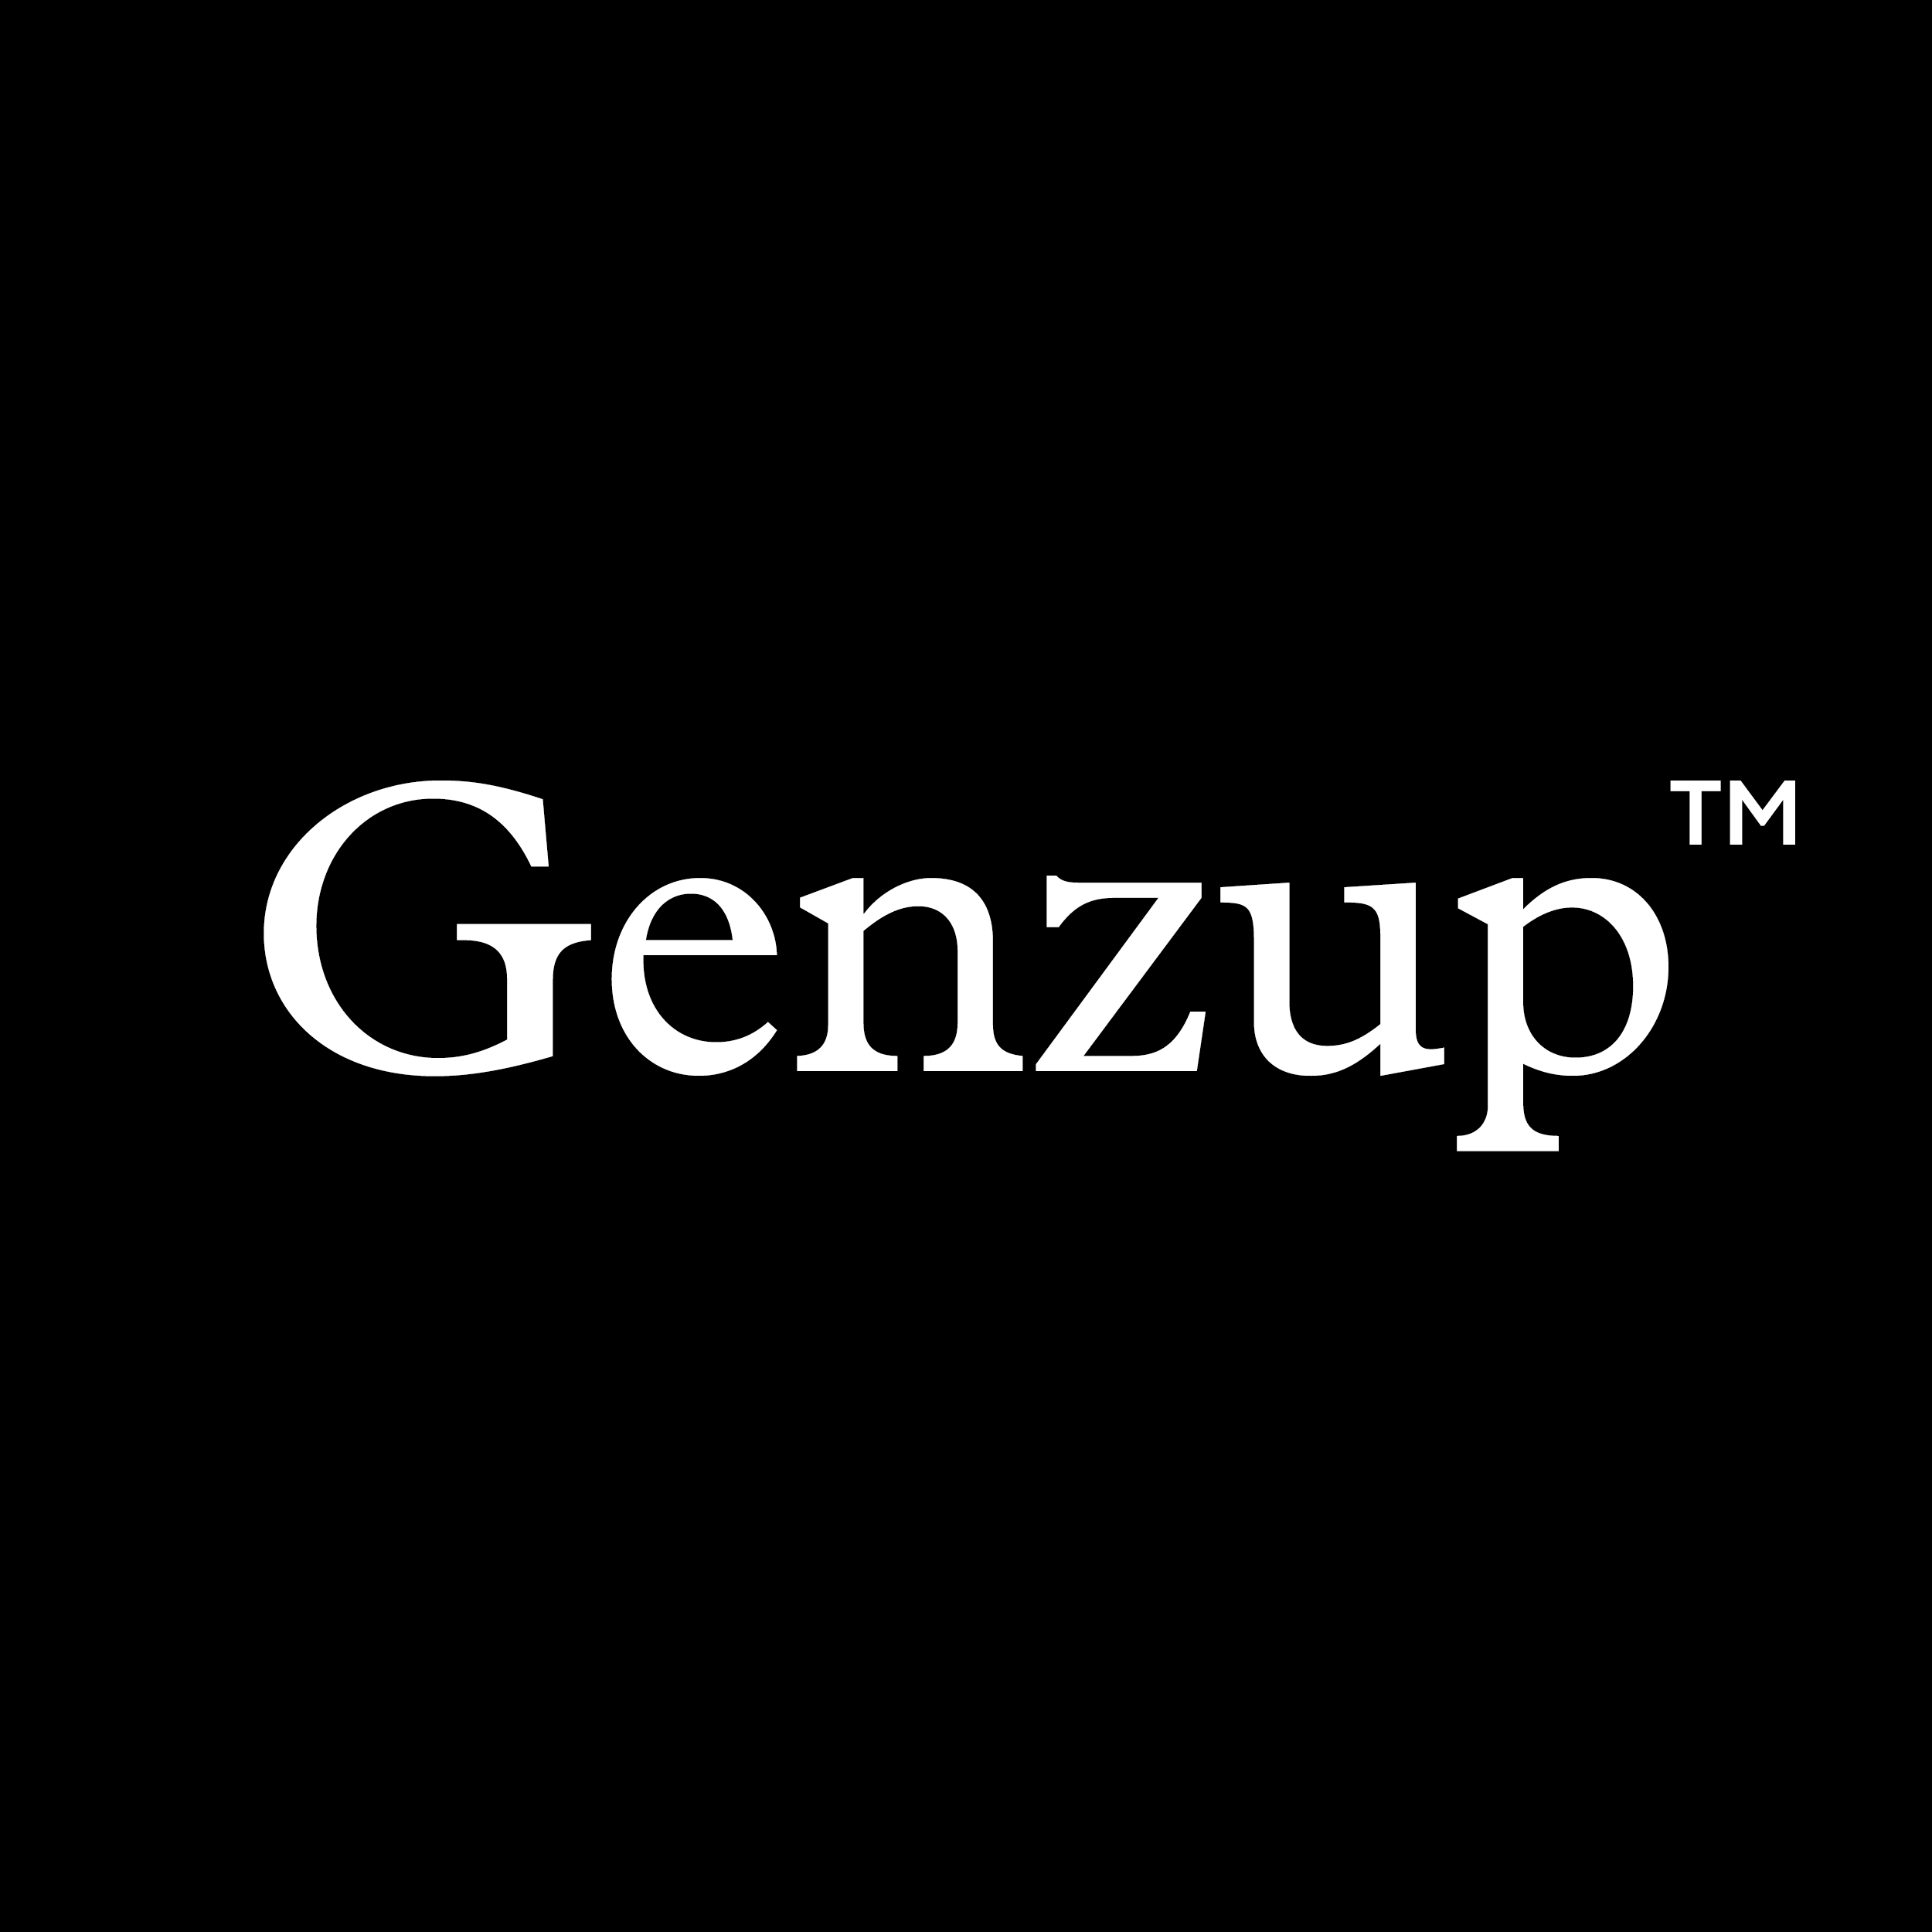 The Genzup Vision Considers Accurate Input From The Largest Population Demographics